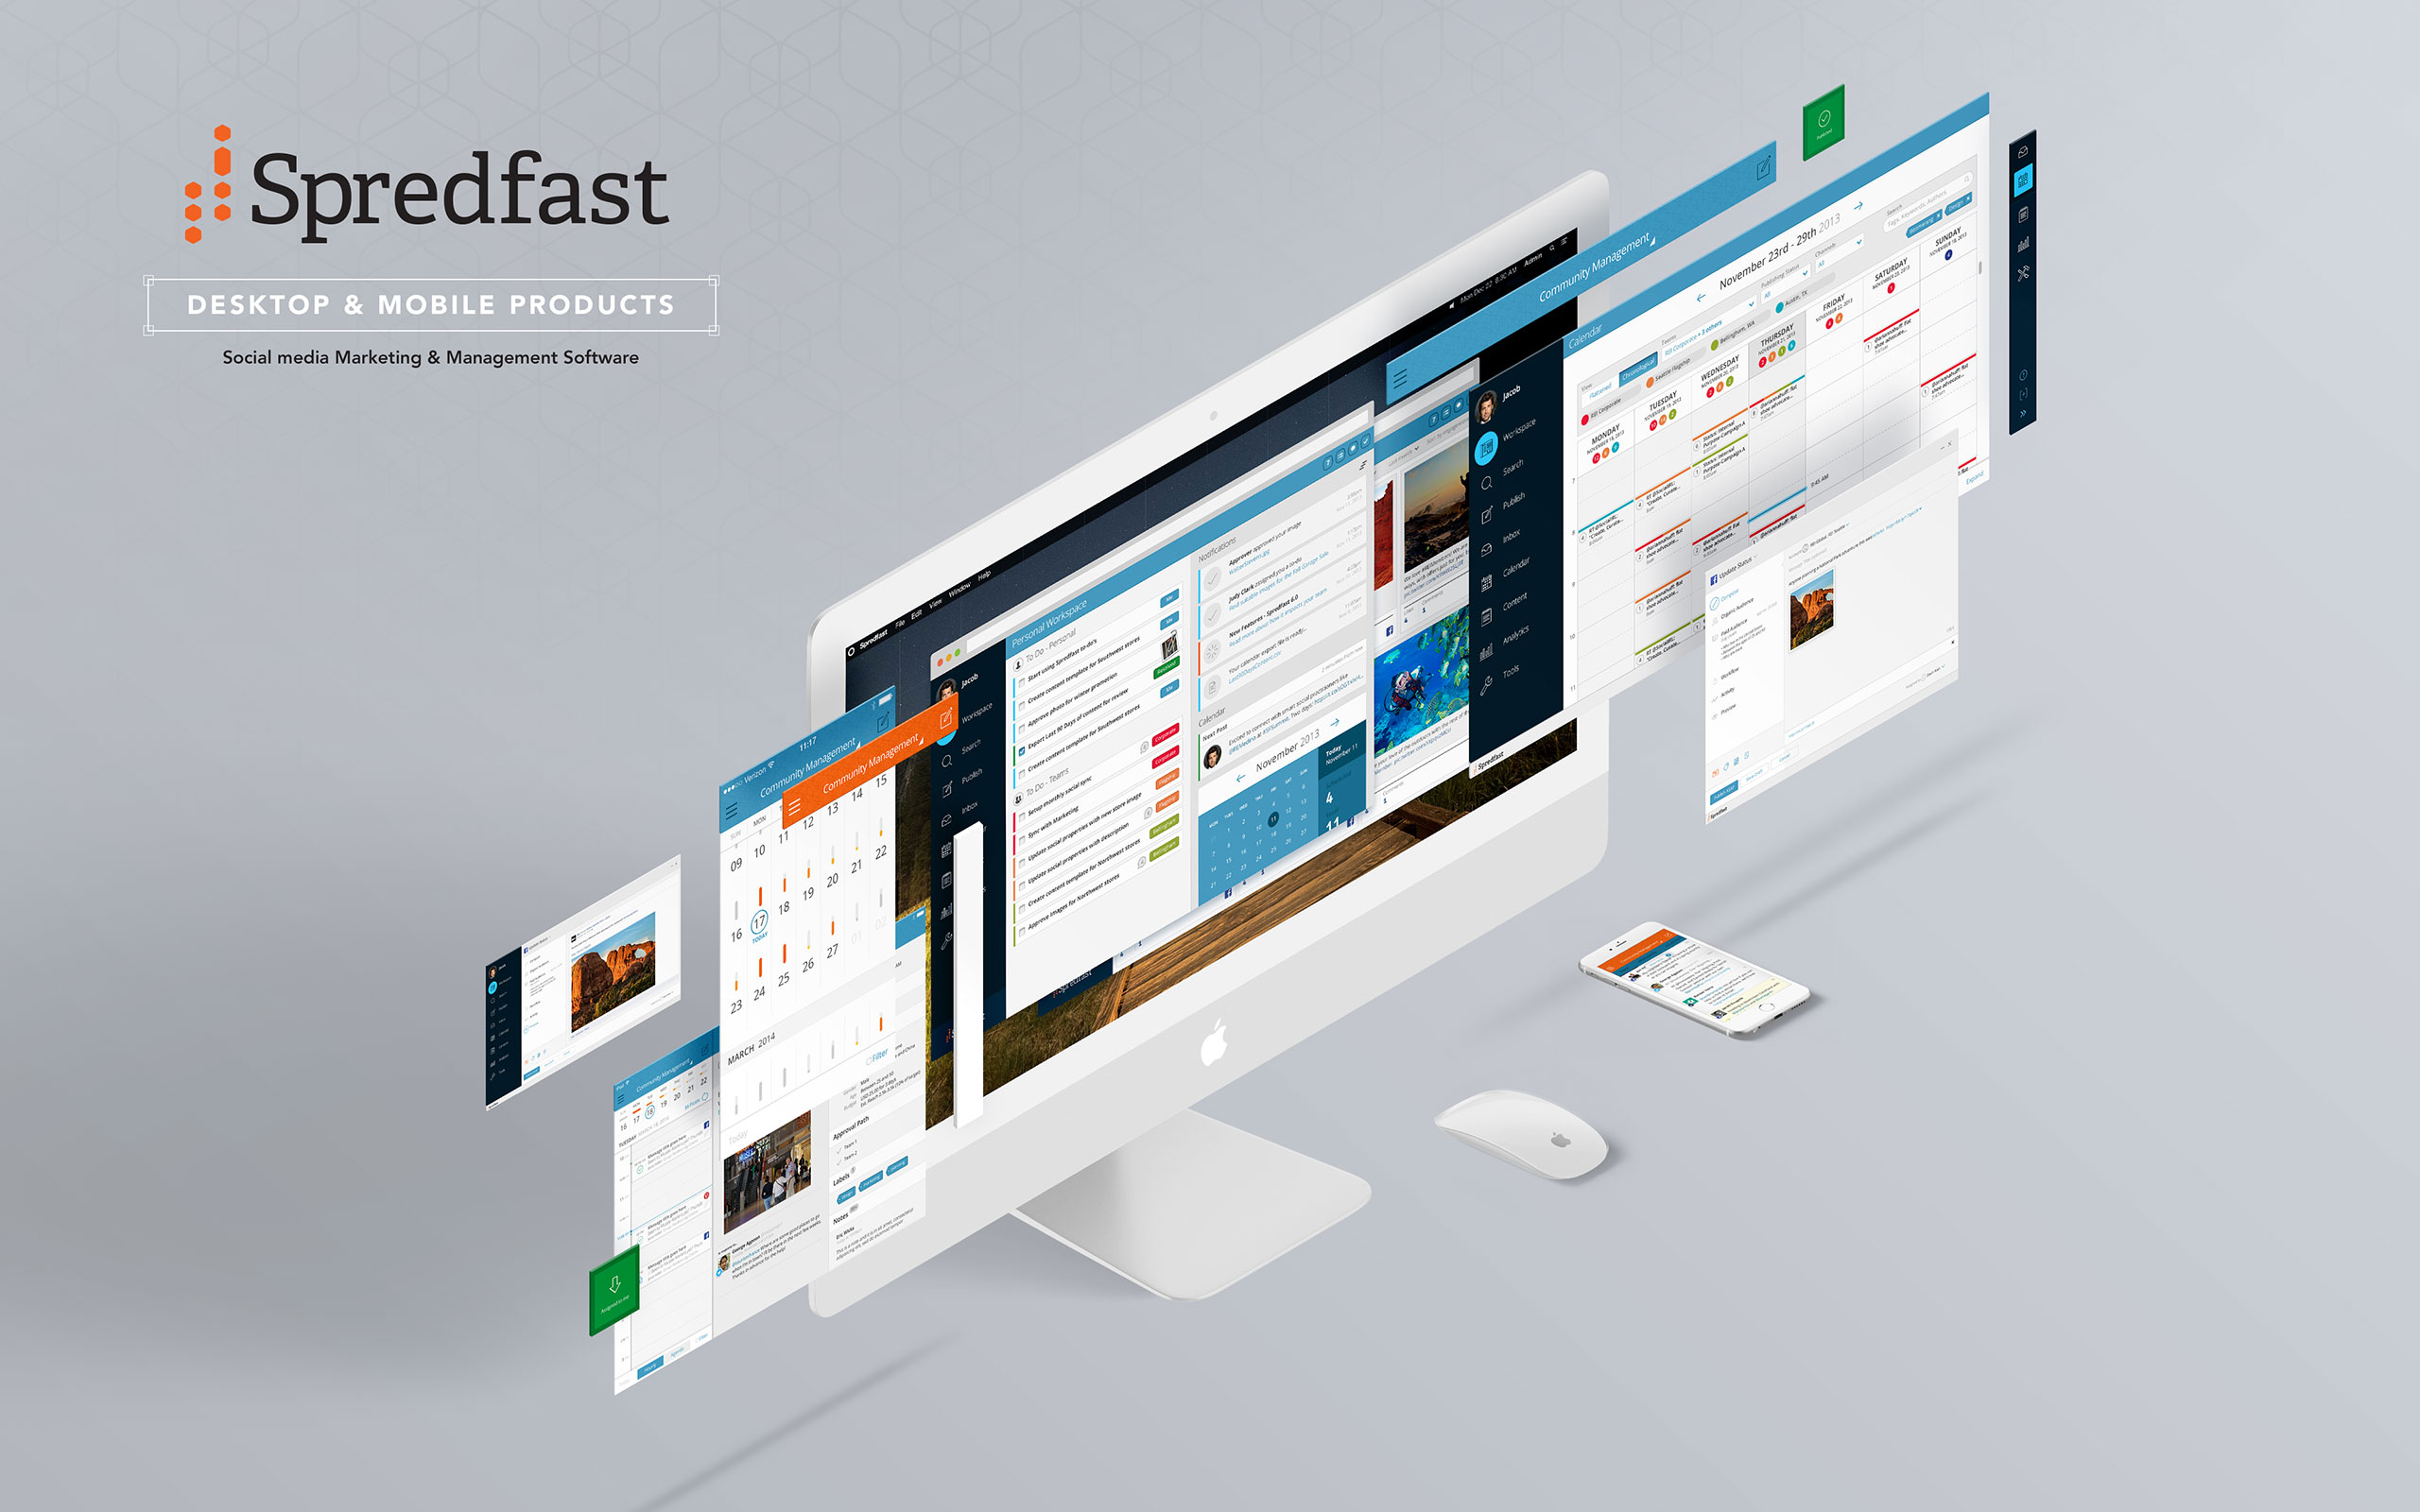 Spredfast Desktop & Mobile Product-Social media Marketing & Management Software